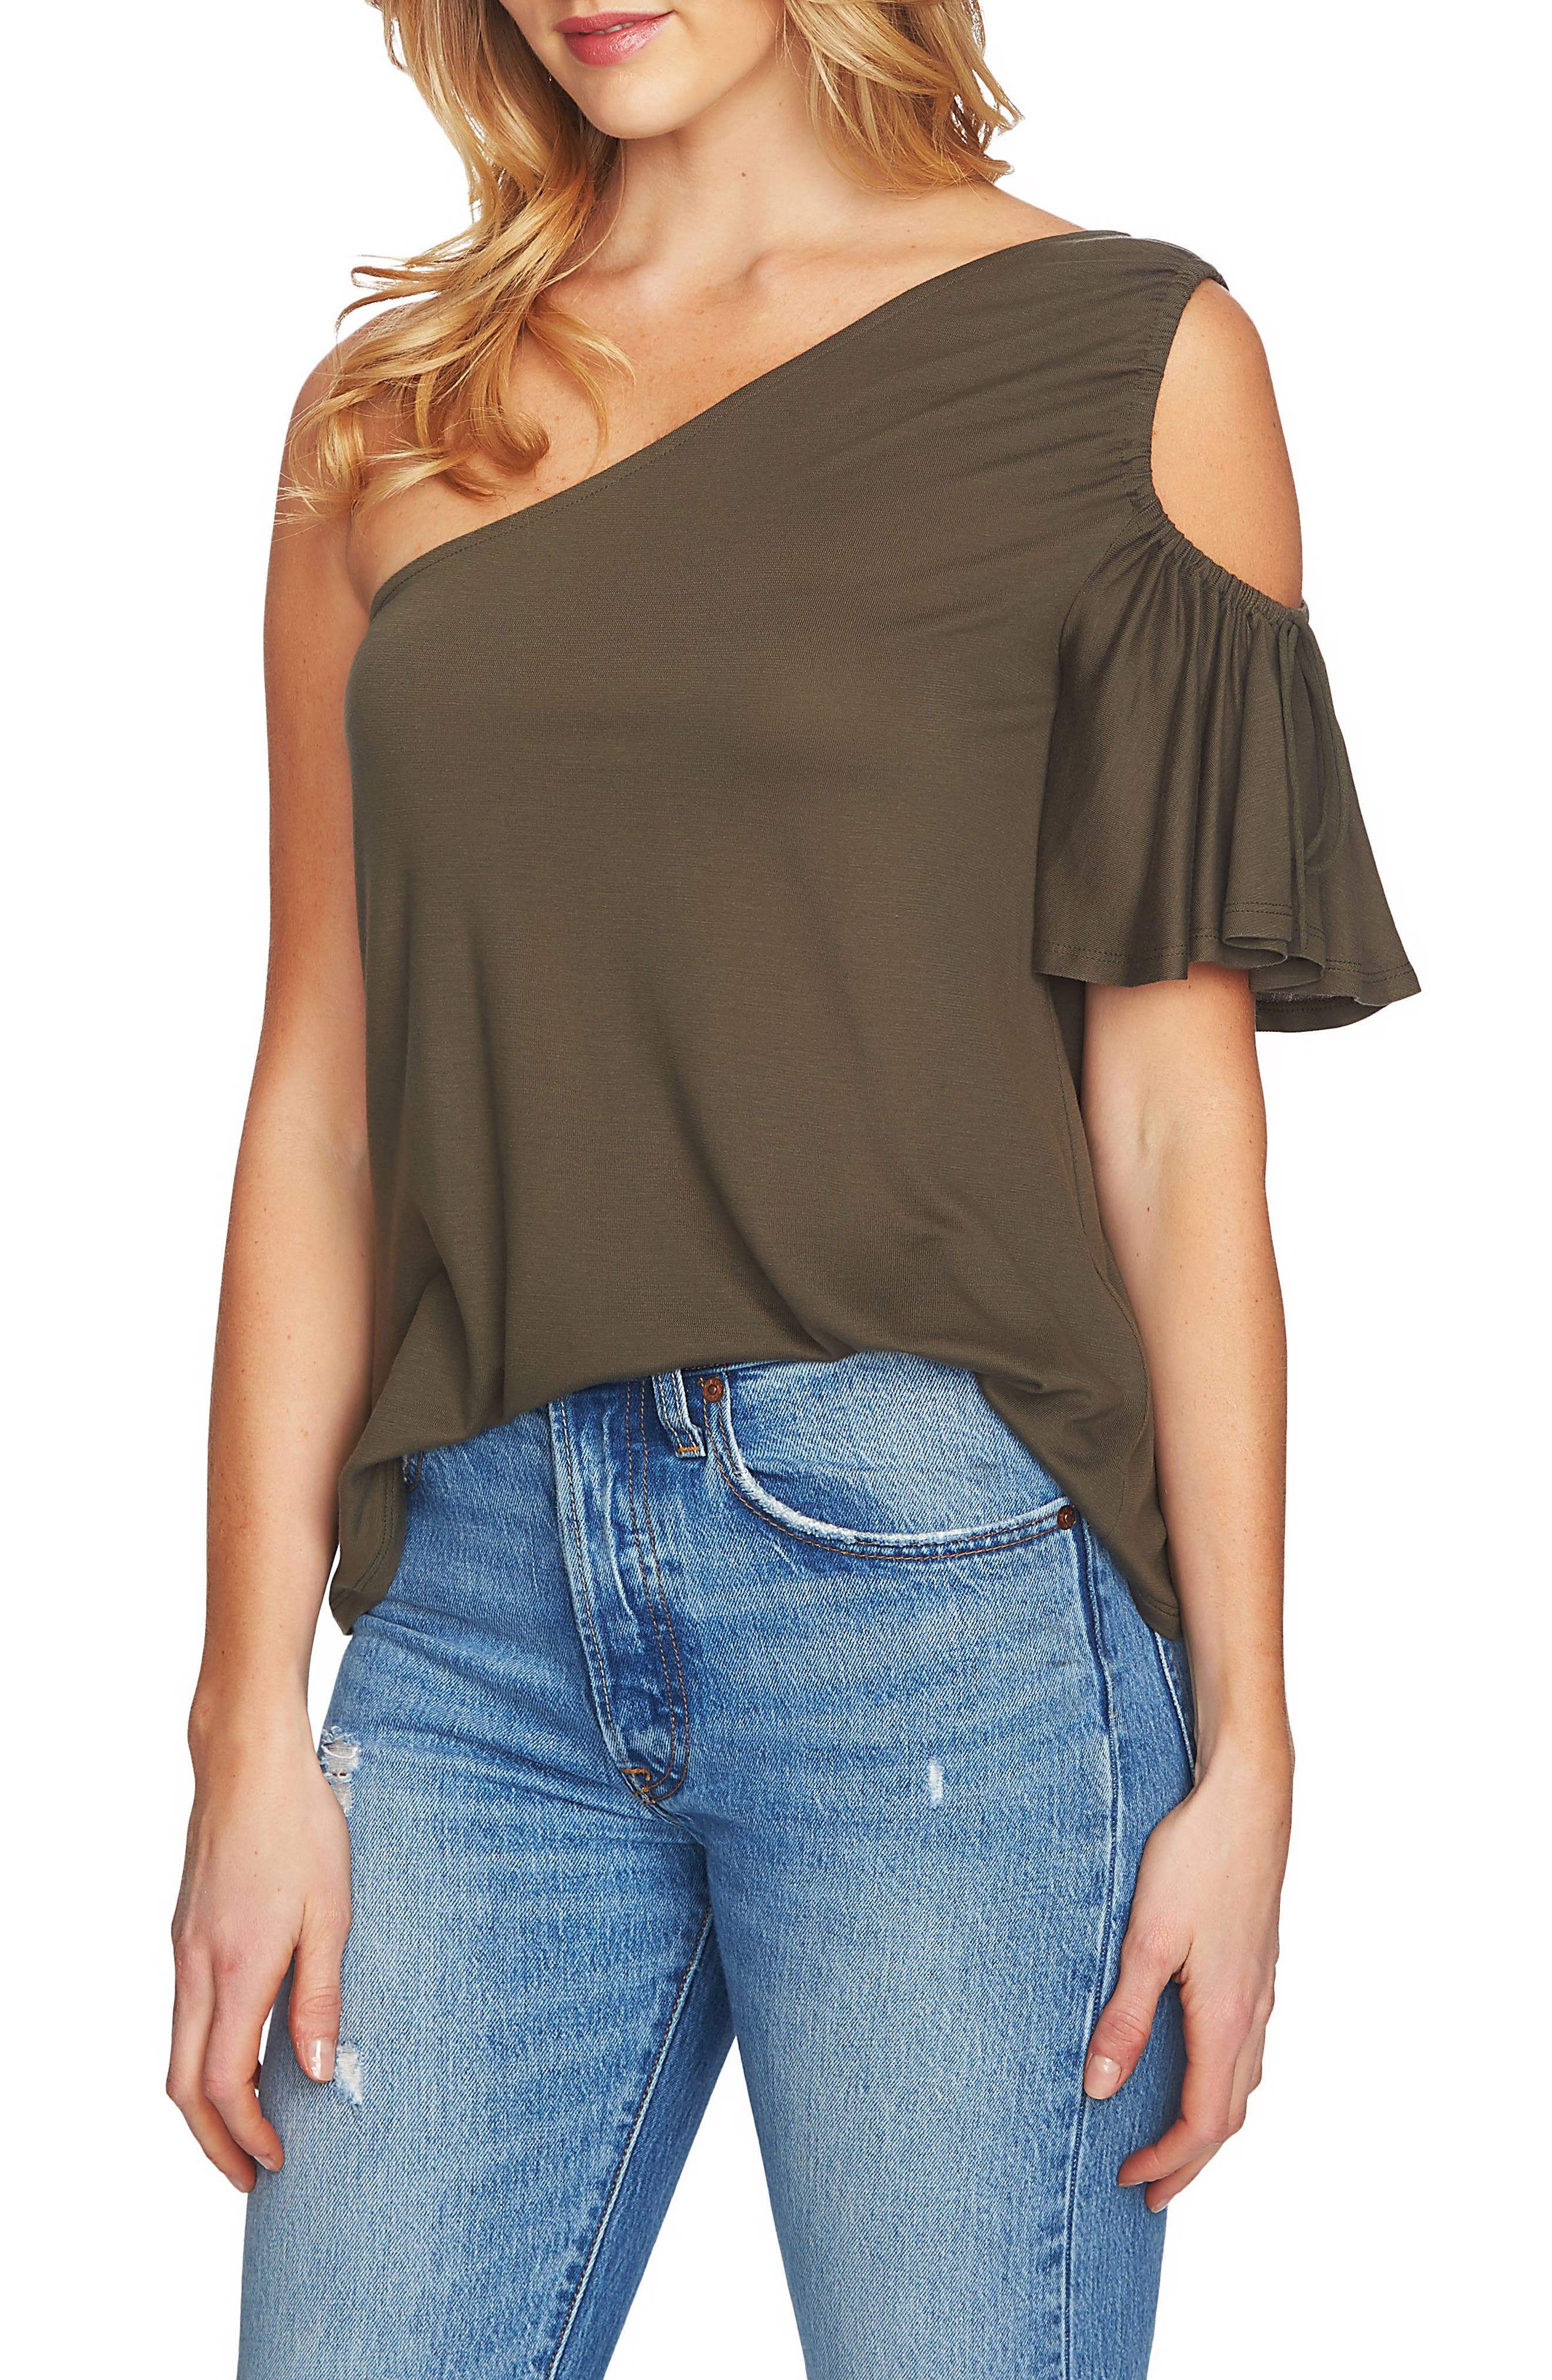 Cutout One-Shoulder Top,                             Main thumbnail 1, color,                             311-Olive Tree